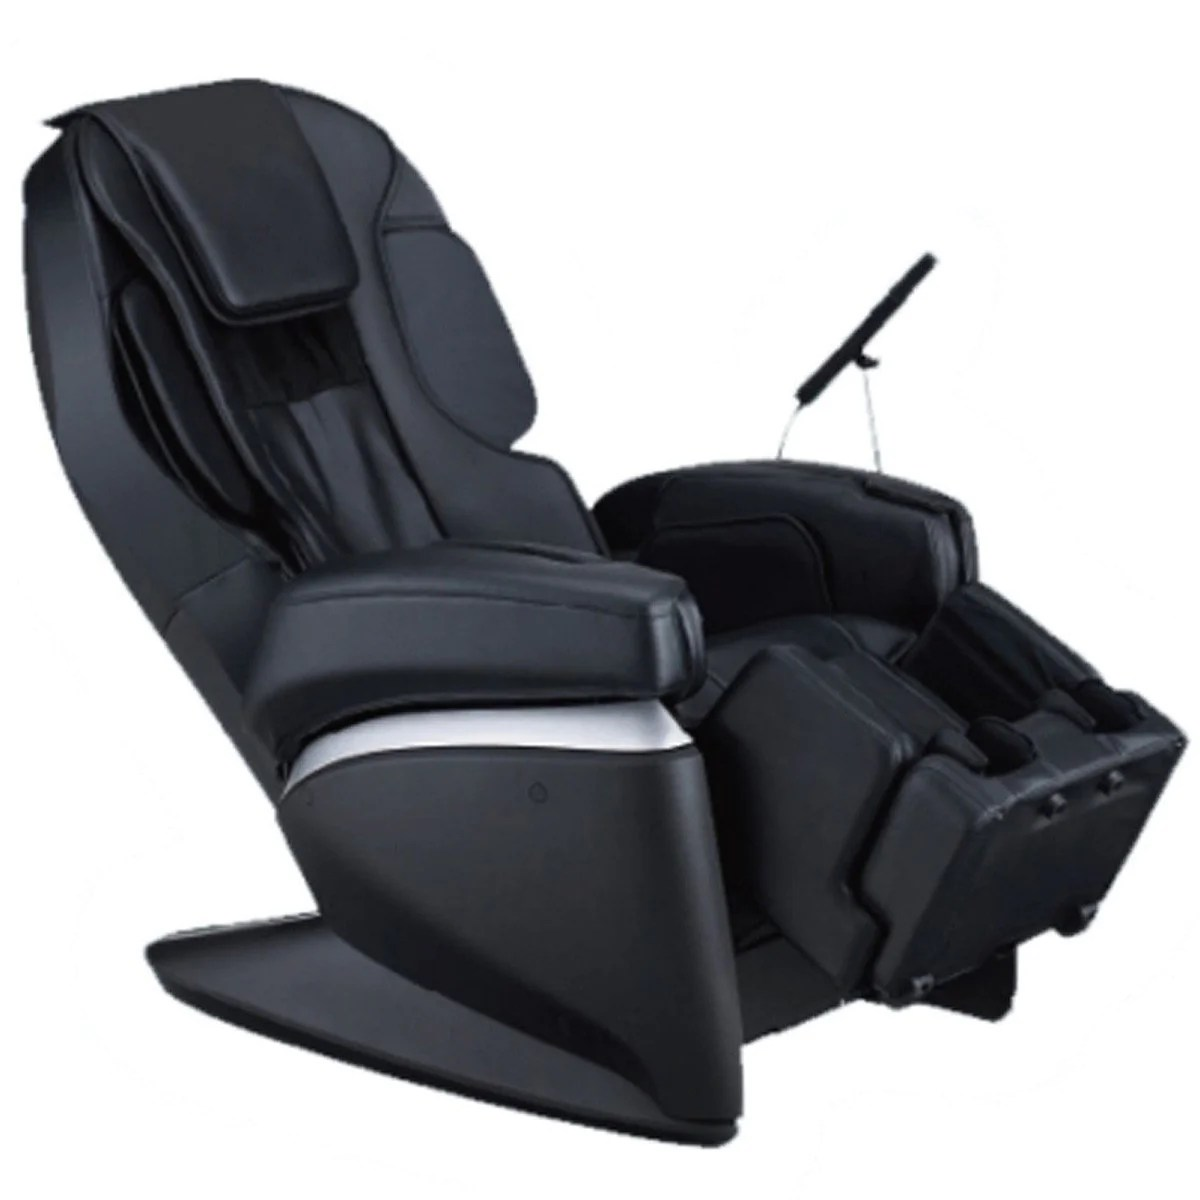 Cheap Massage Chairs 1000 Discount On The Osaki Jp Premium 4 Made In Japan